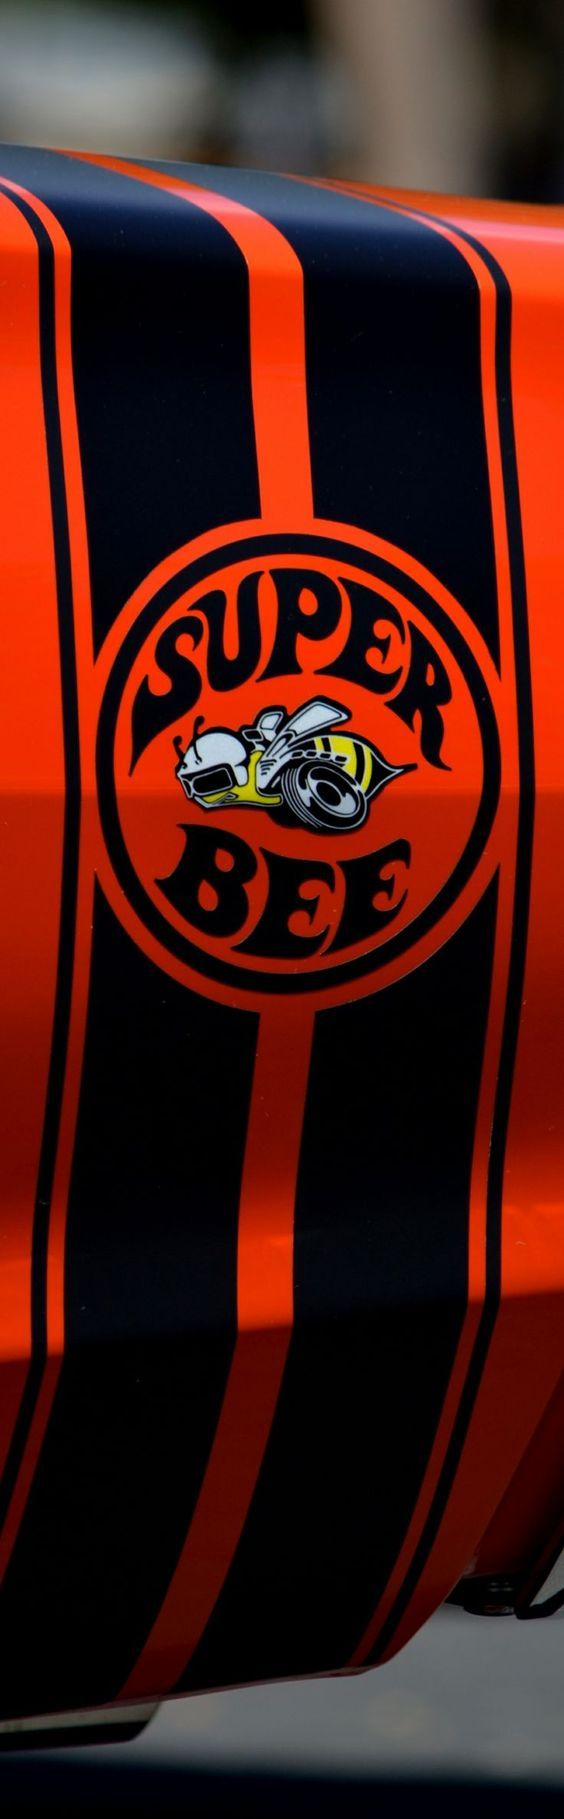 The dodge super bee was a limited production muscle car from dodge produced from 1968 until the super bee model was resurrected for the and 2013 dodge